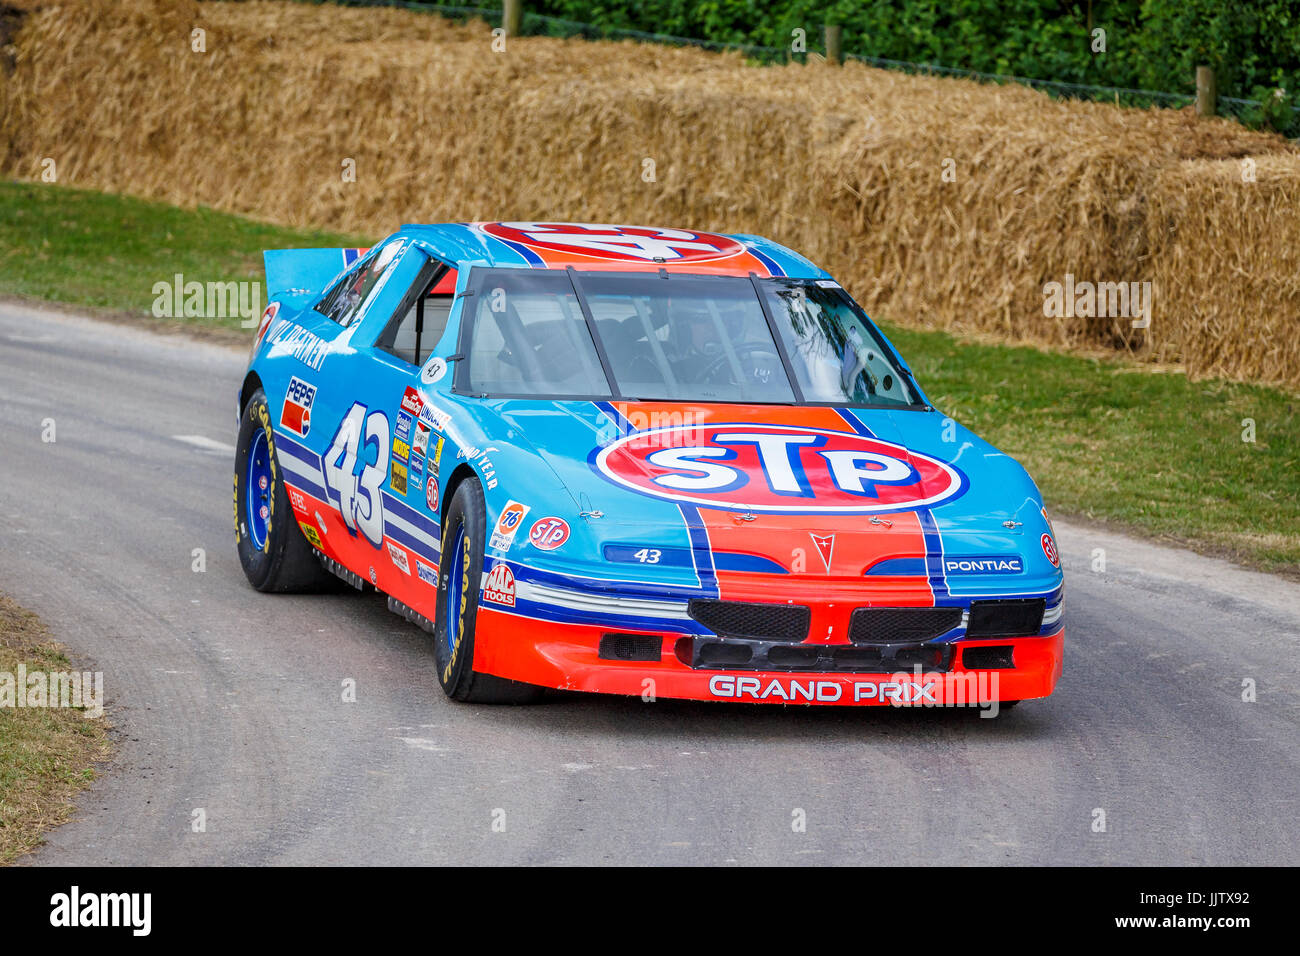 pontiac grand prix high resolution stock photography and images alamy https www alamy com stock photo 1992 pontiac grand prix nascar with driver bobby labonte at the 2017 149294238 html